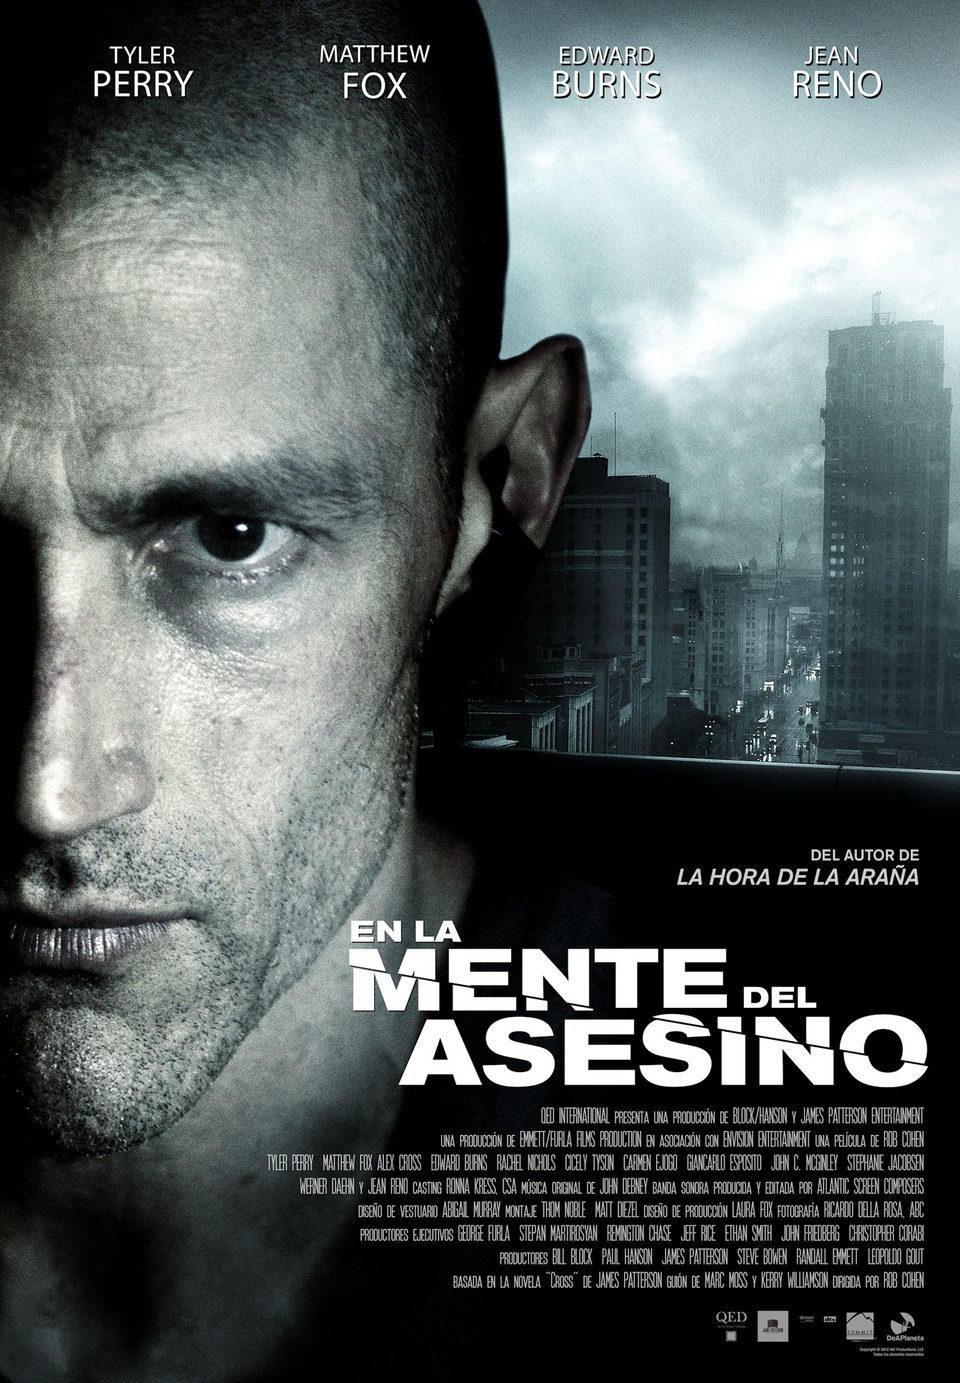 España poster for Alex Cross